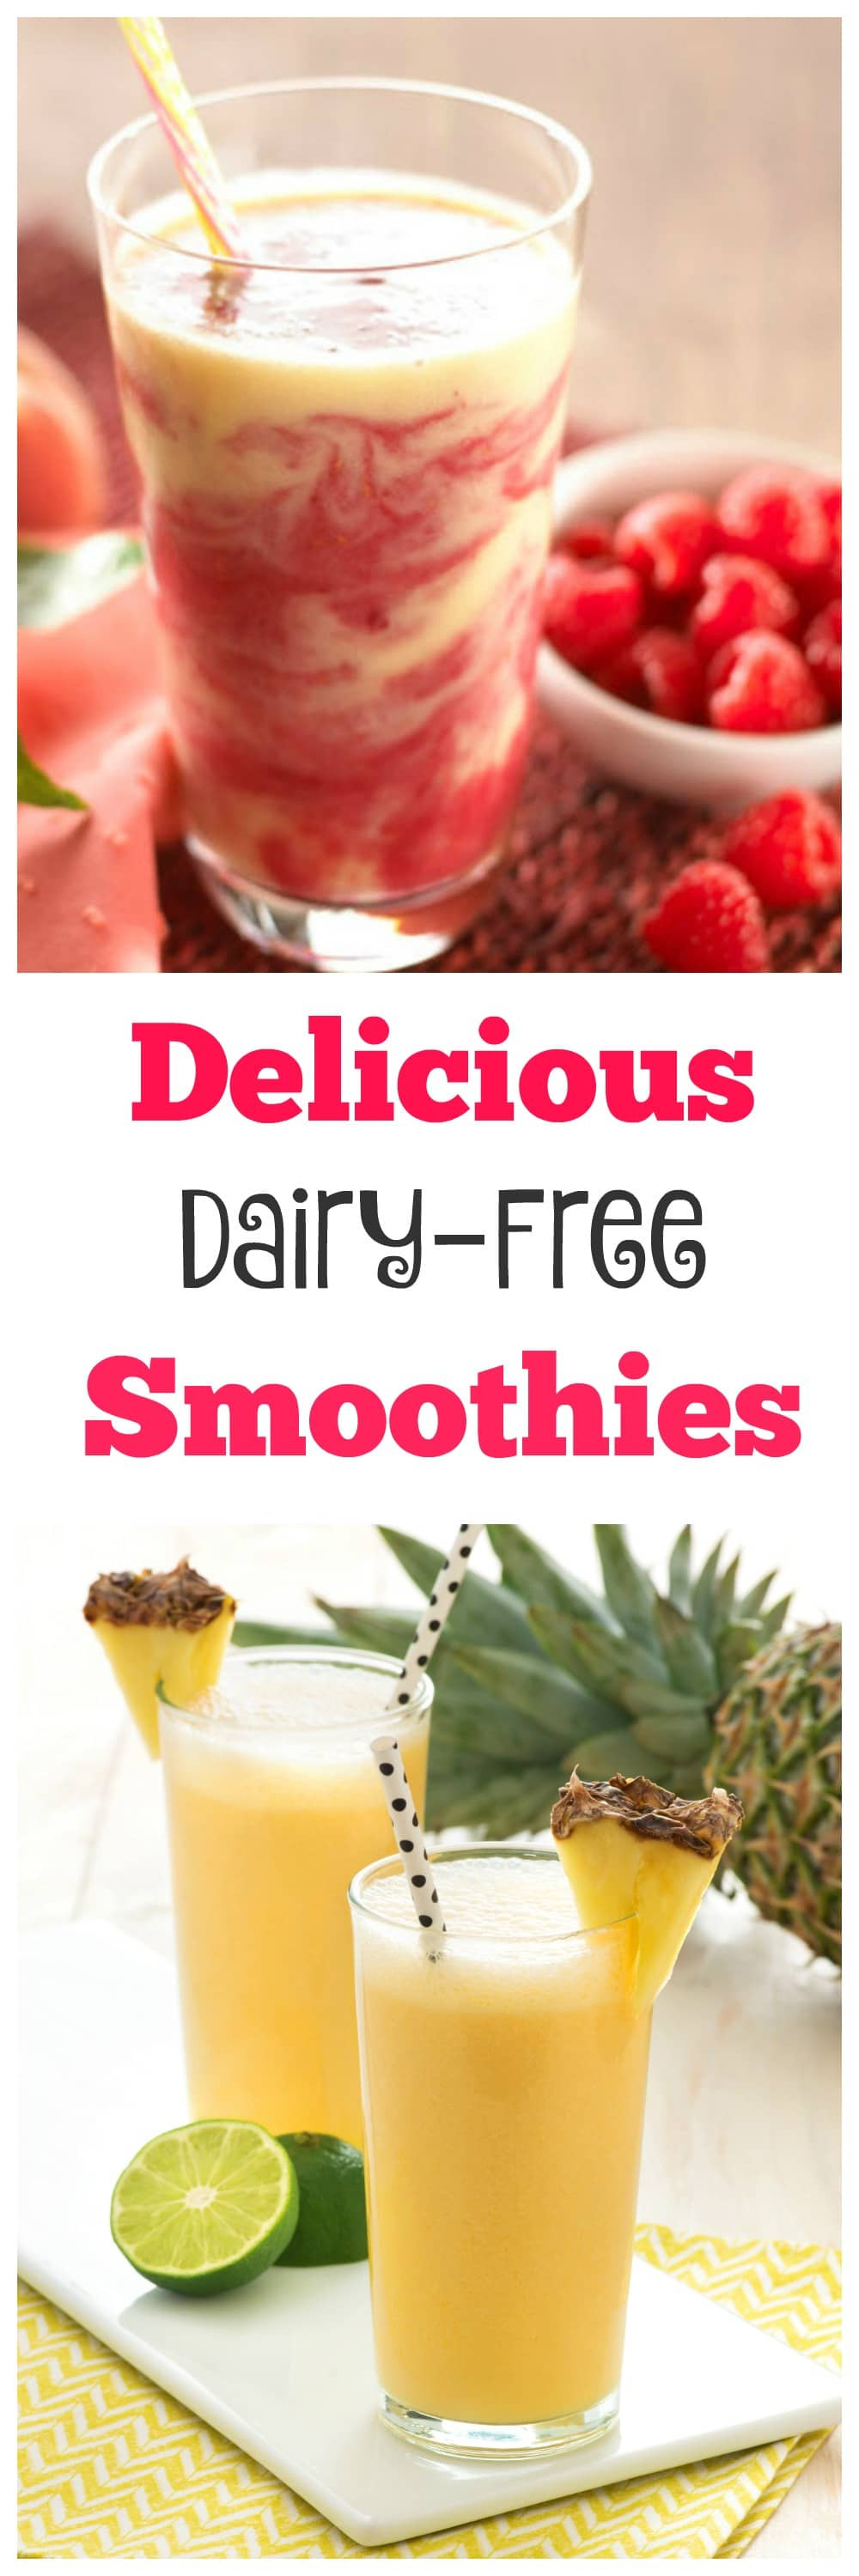 Dairy Free Smoothies  Delicious Dairy Free Smoothies